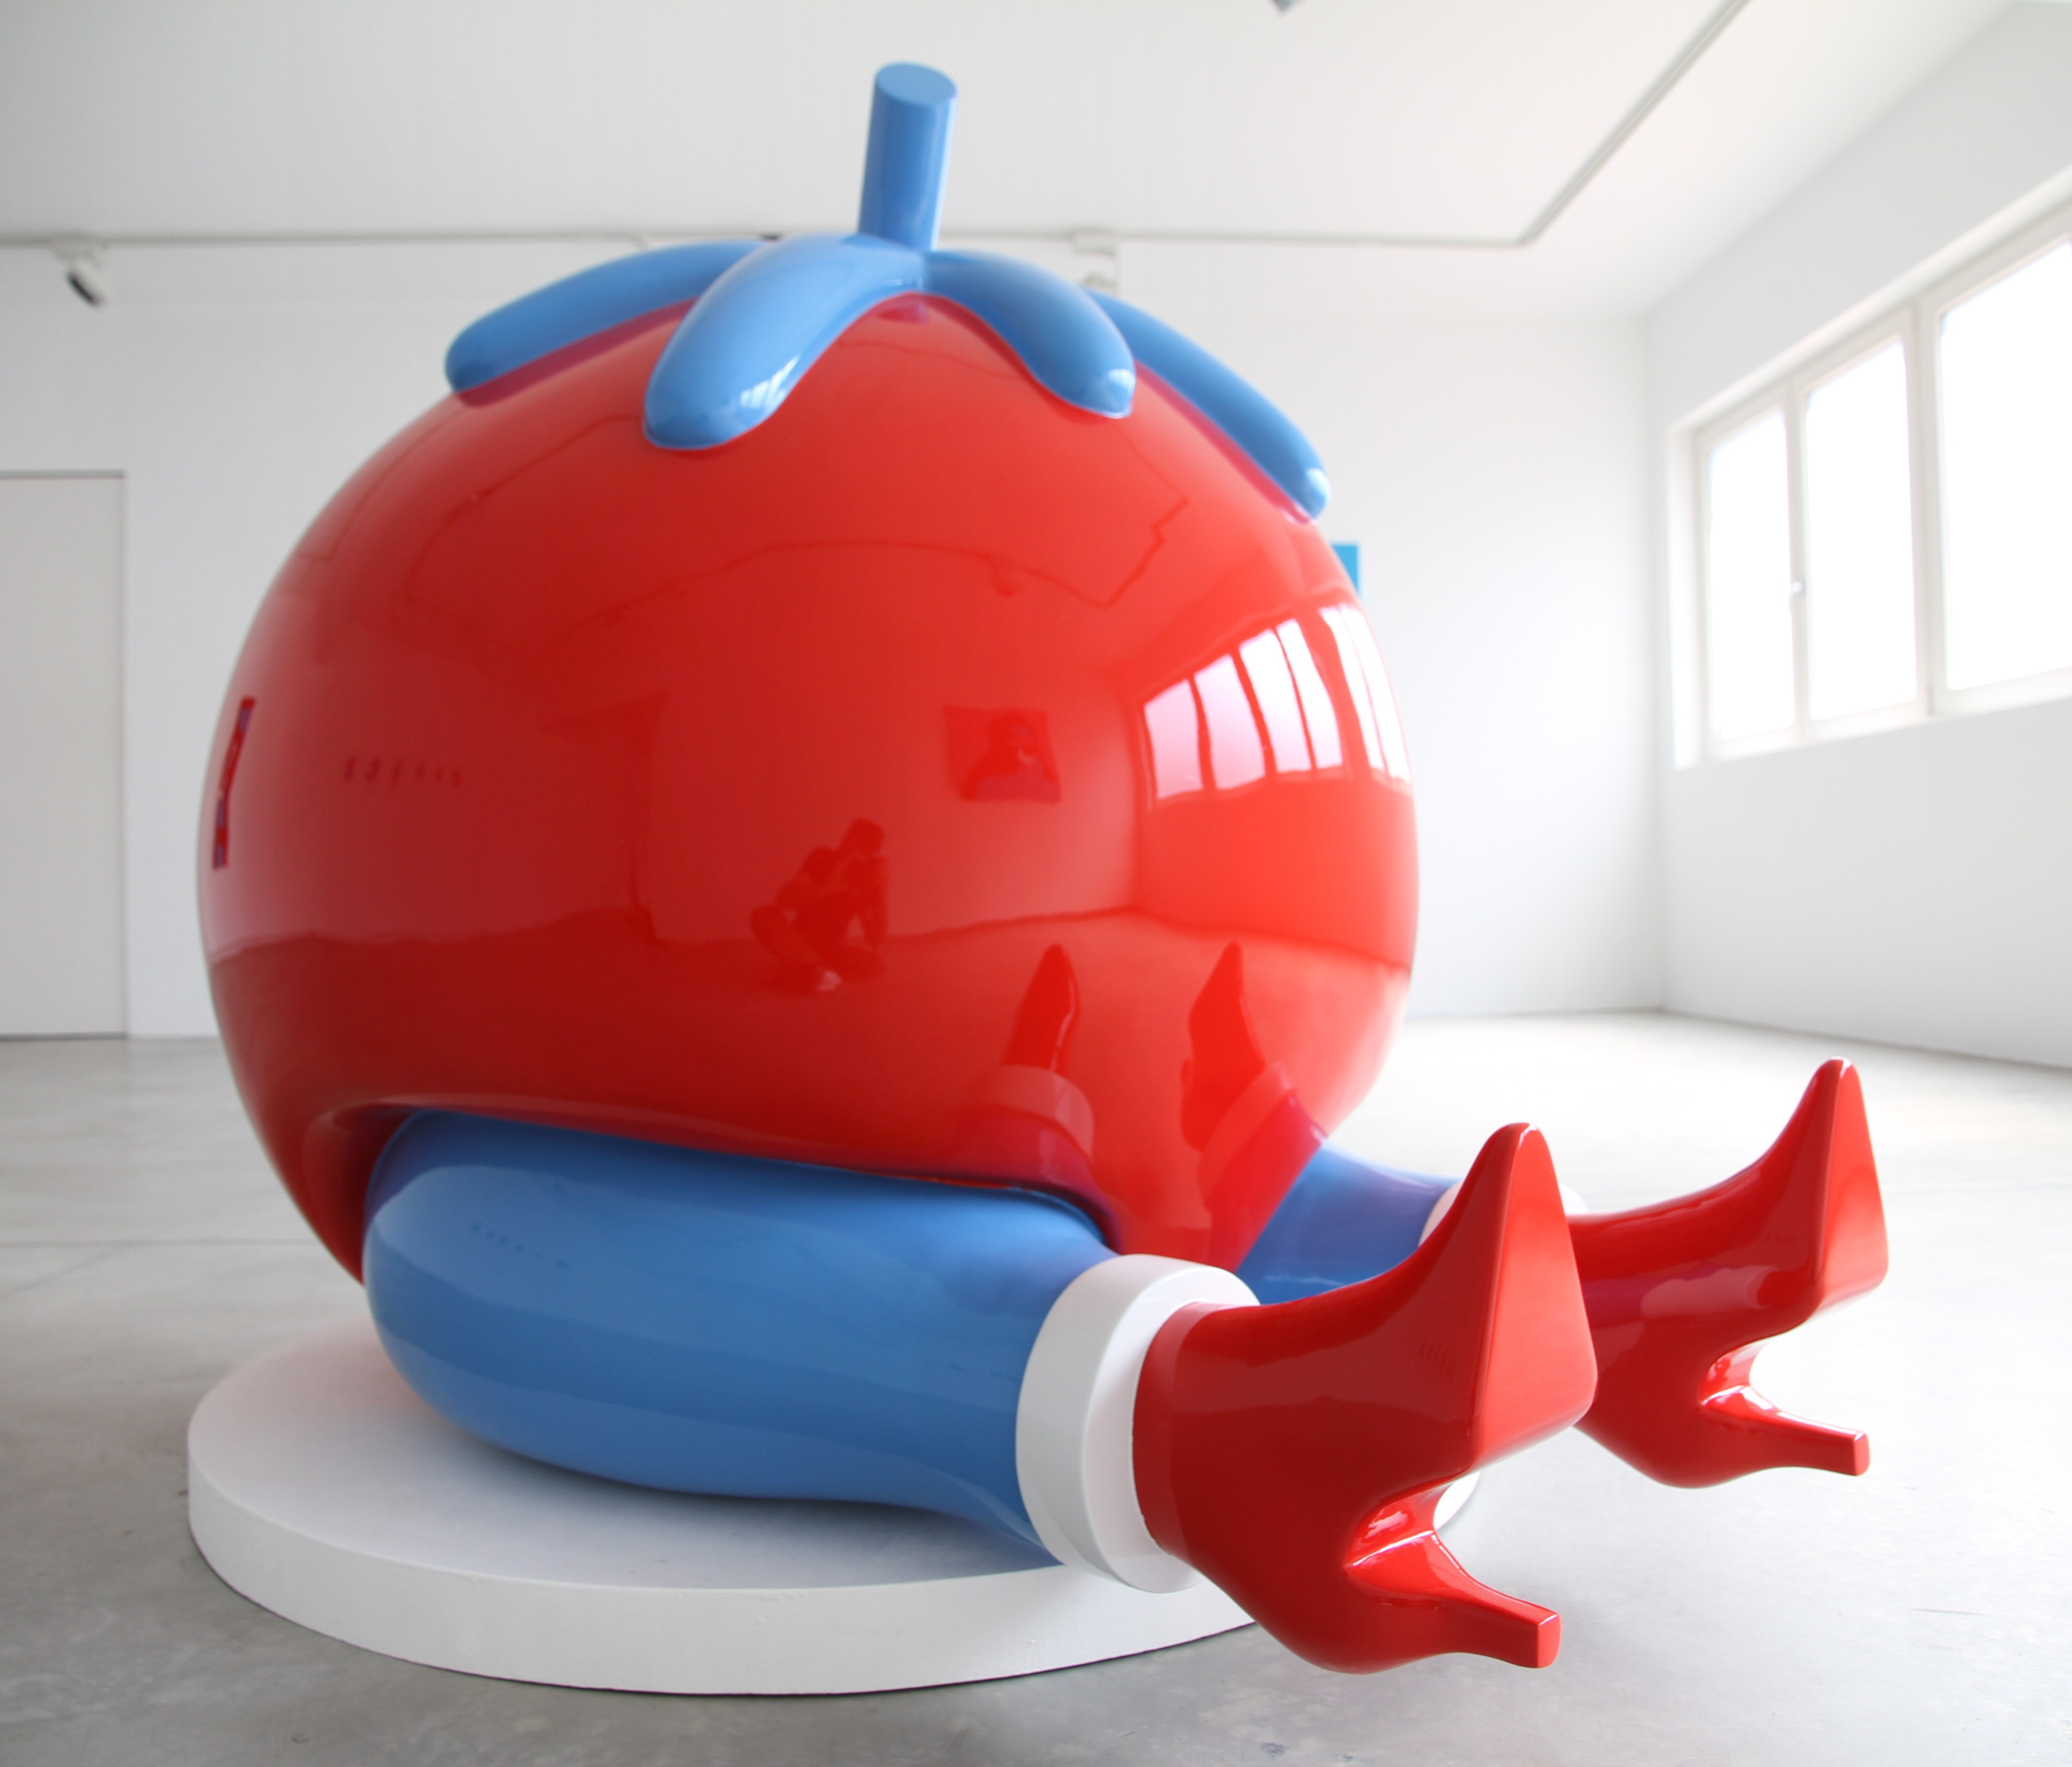 Give Up sculpture by Parra, a part of the permanent exhibition | Courtesy of the MIMA Museum